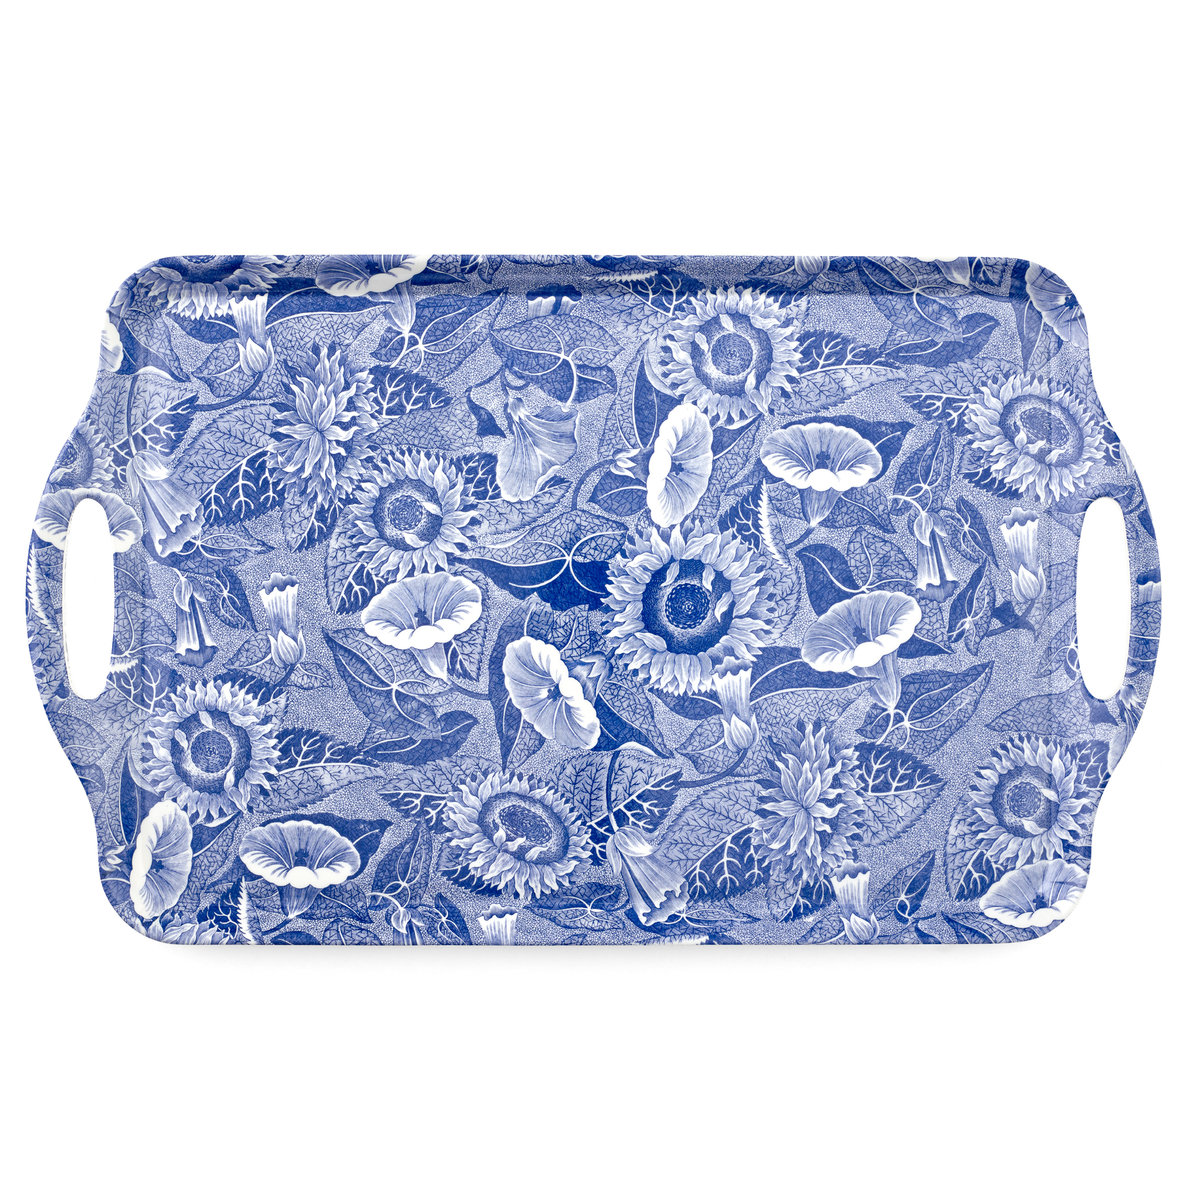 Pimpernel Blue Room Sunflower Large Melamine Handled Tray image number 0